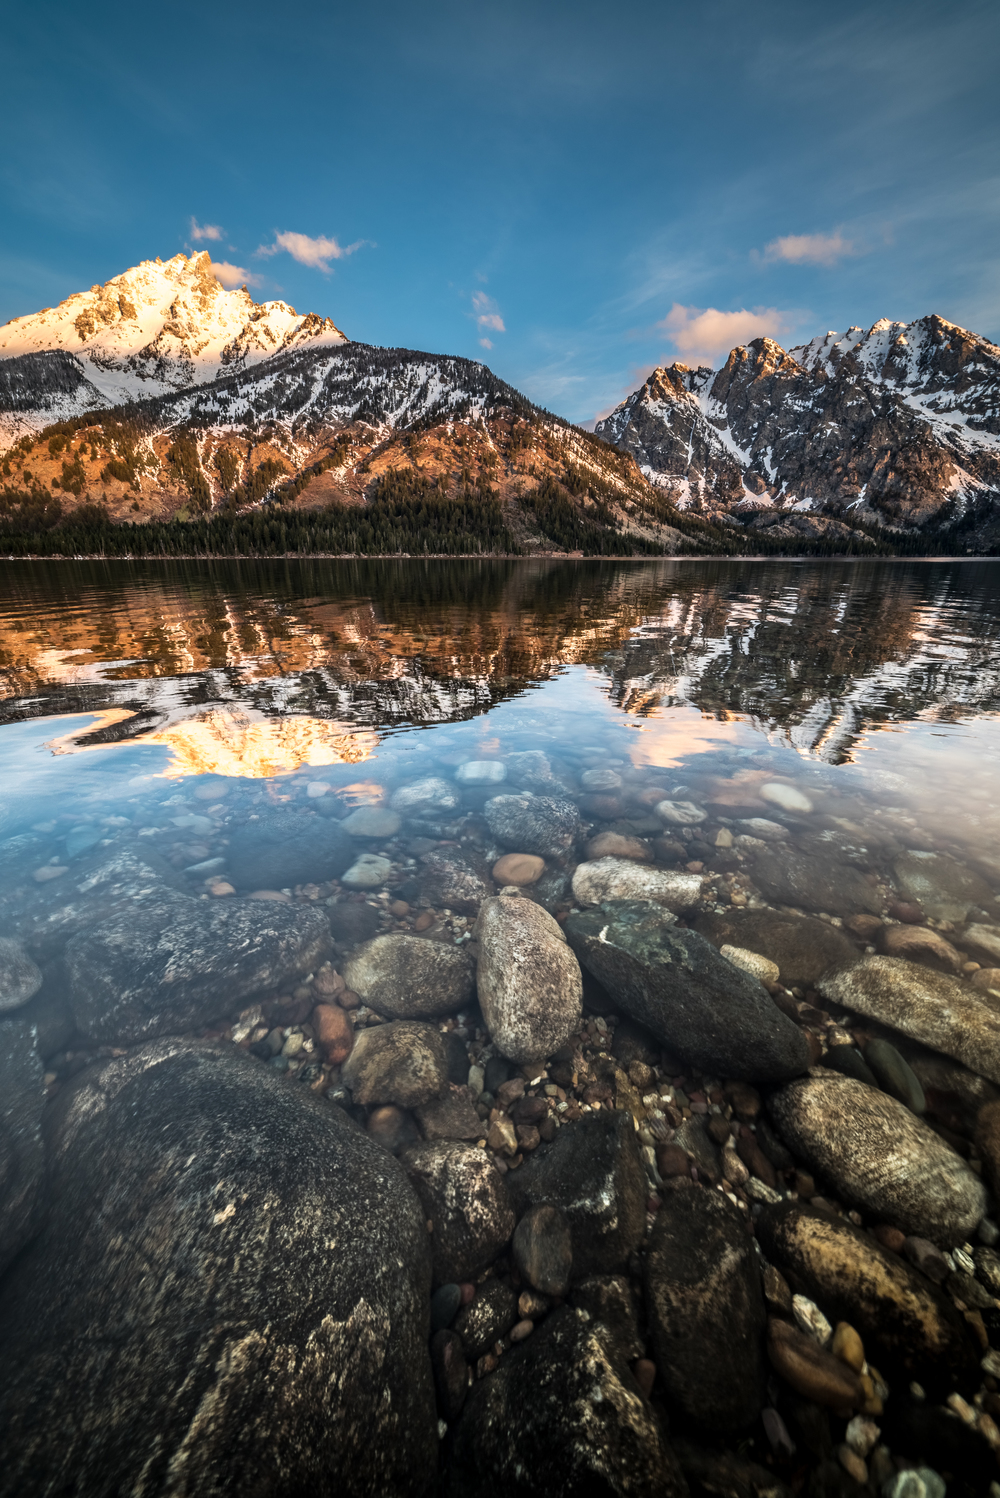 A vertical composition showing off how clear the water is in Jenny Lake as the morning sun kisses the peak of Grand Teton.